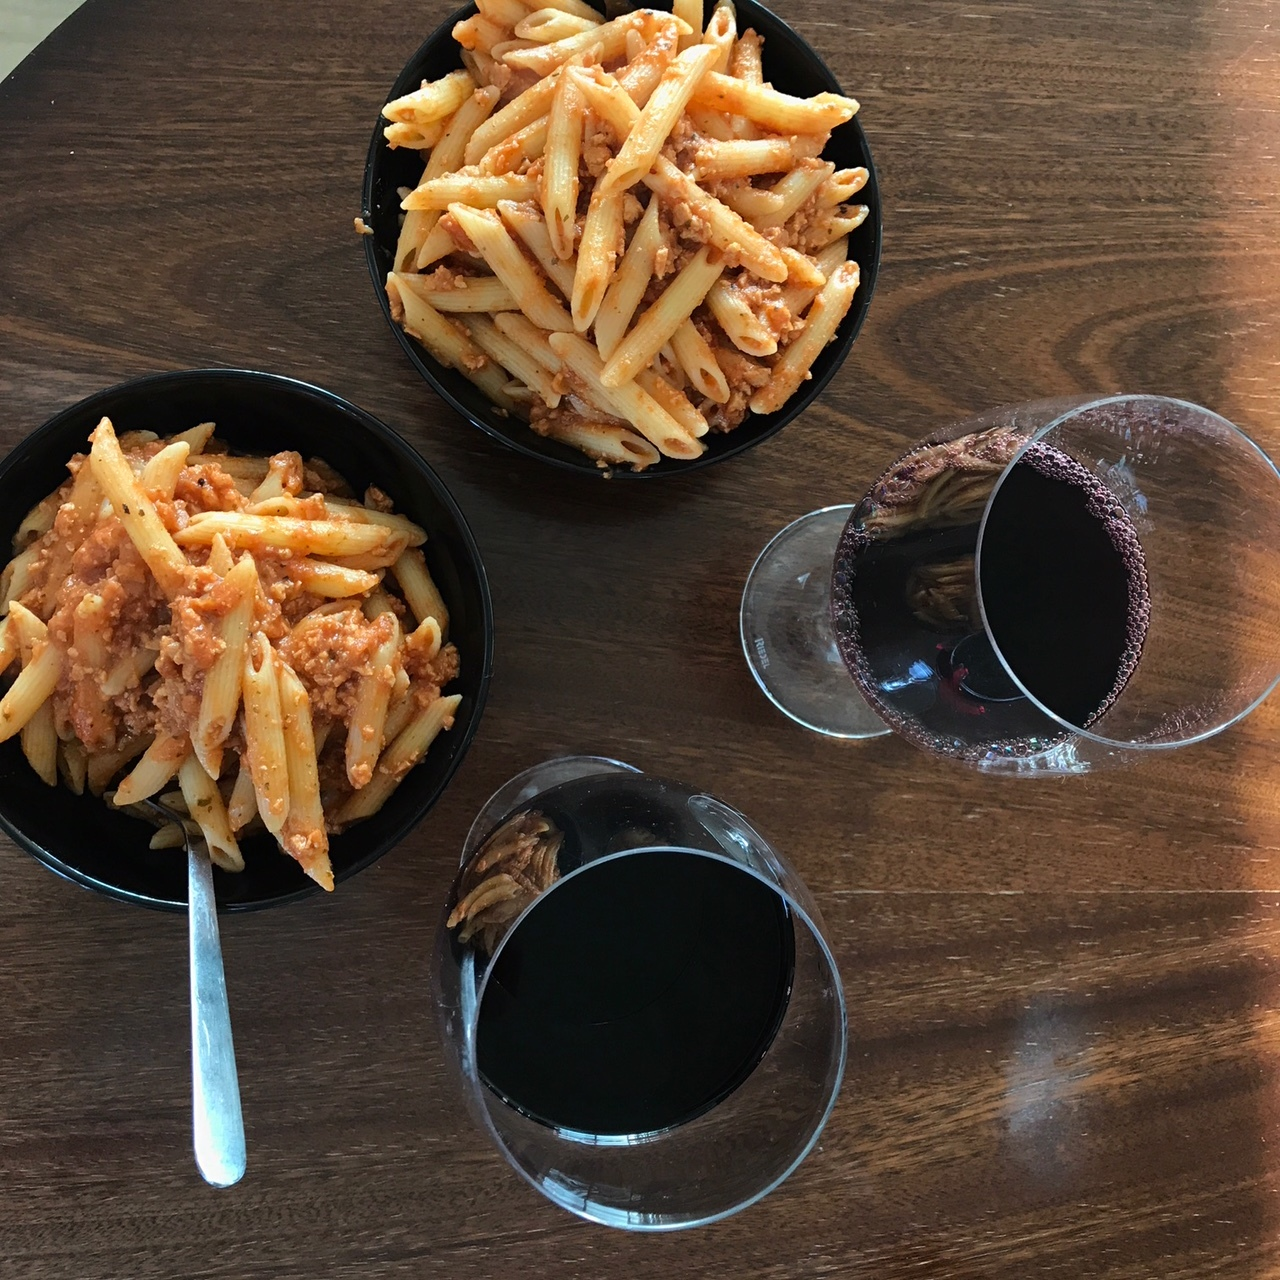 Pasta with red sauce and vegan crumbles, all found at a Bonus!